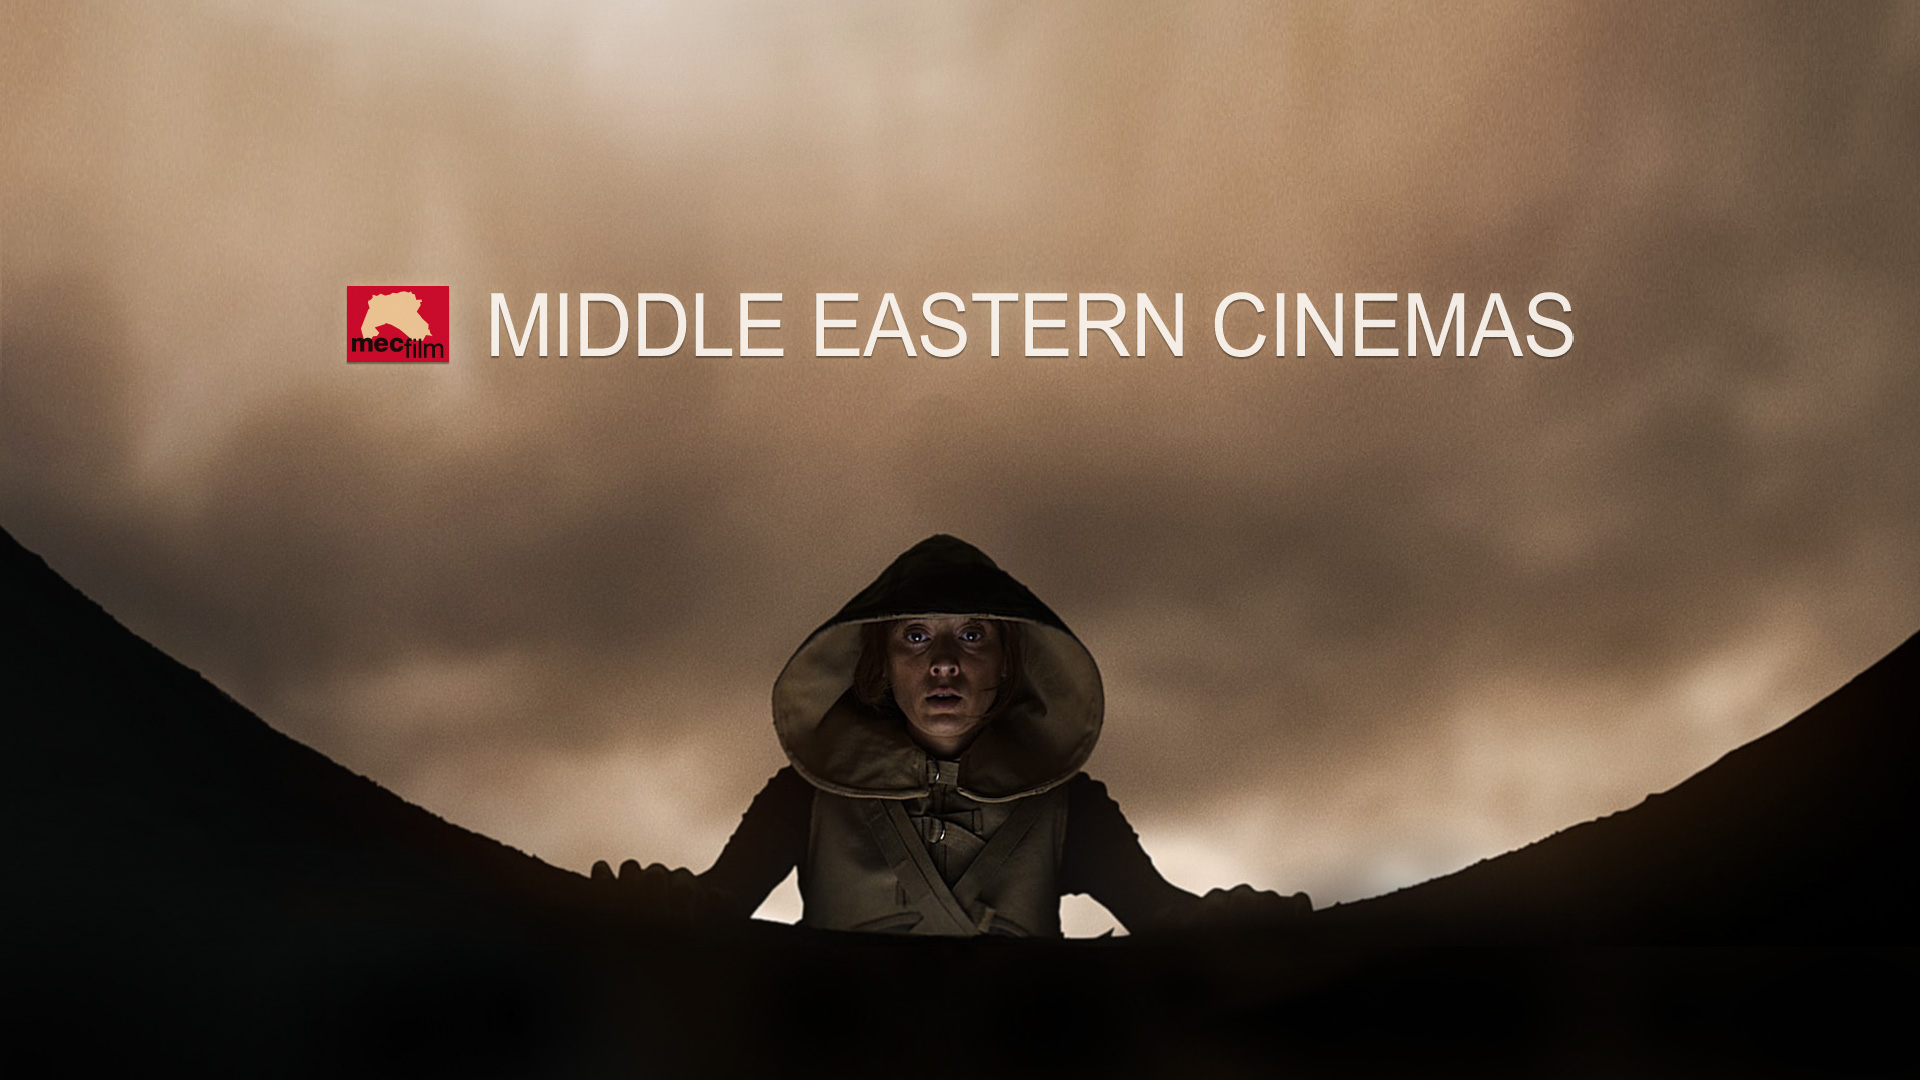 mec film - Middle Eastern Cinemas